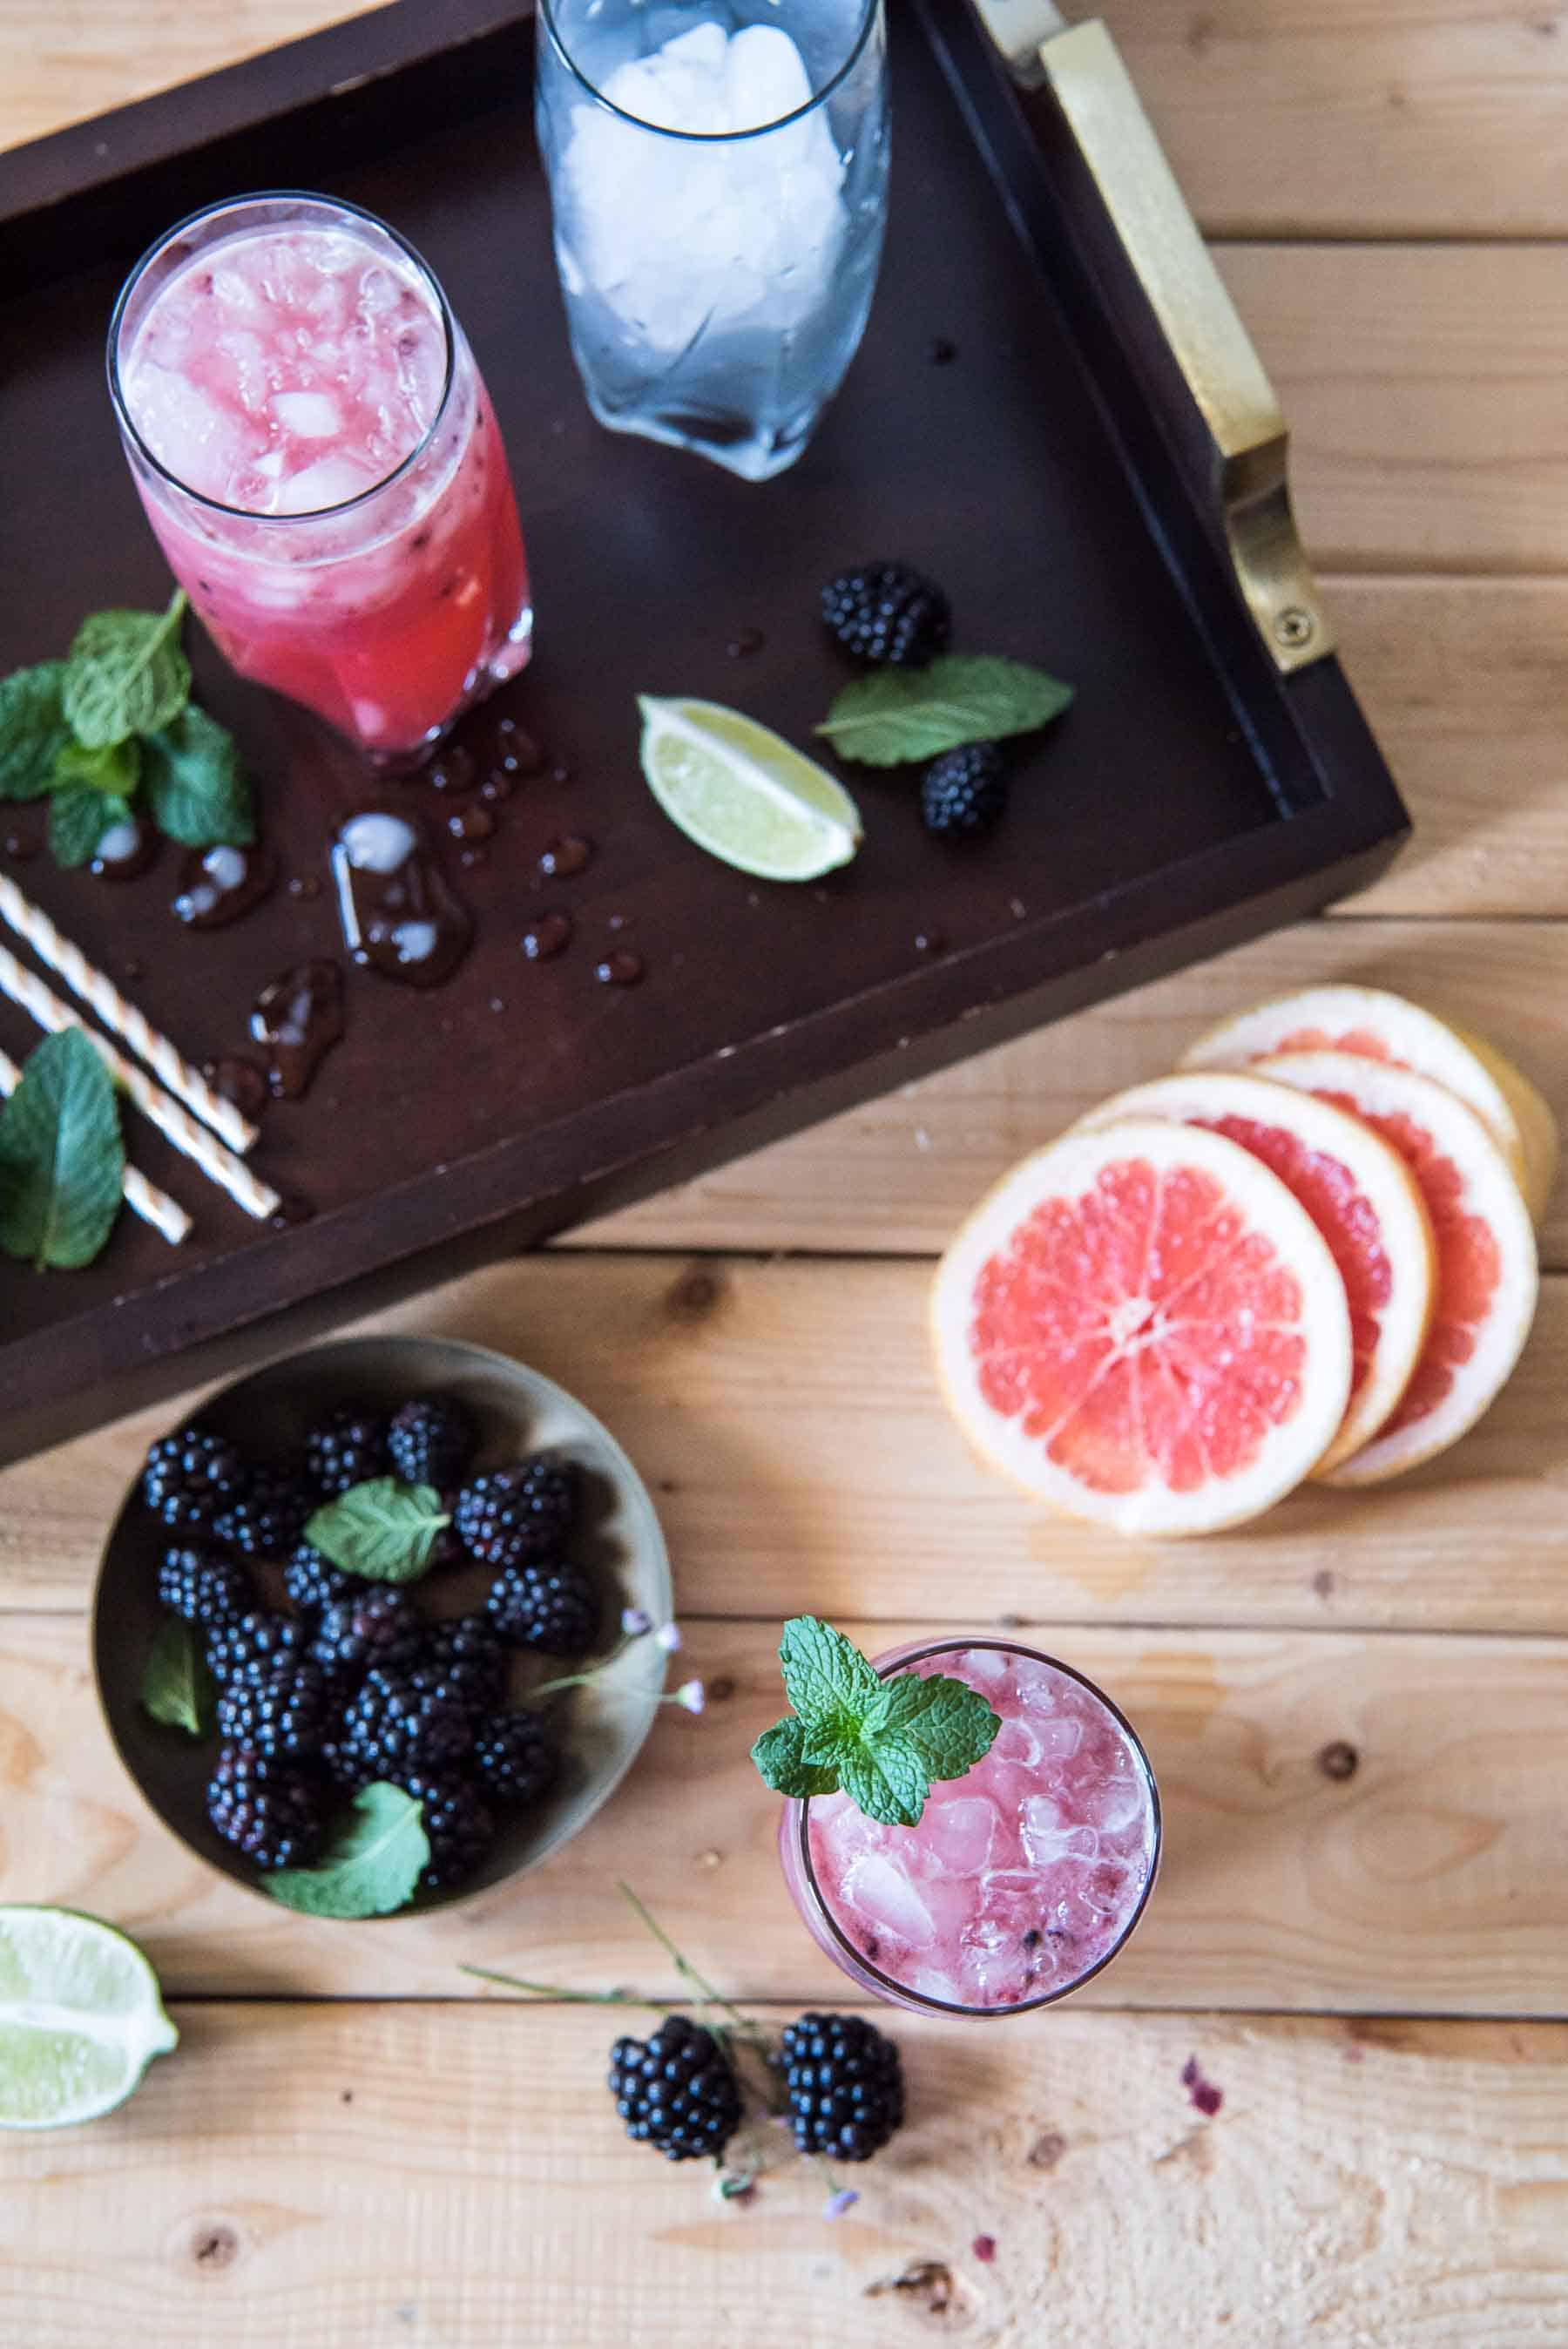 The Blackberry Paloma is a berry delicious take on an already twisted cocktail! Muddle grapefruit juice and blackberries together with a little tequila, mint, and sugar, and you've got yourself a lovely version of the popular Mexican drink.